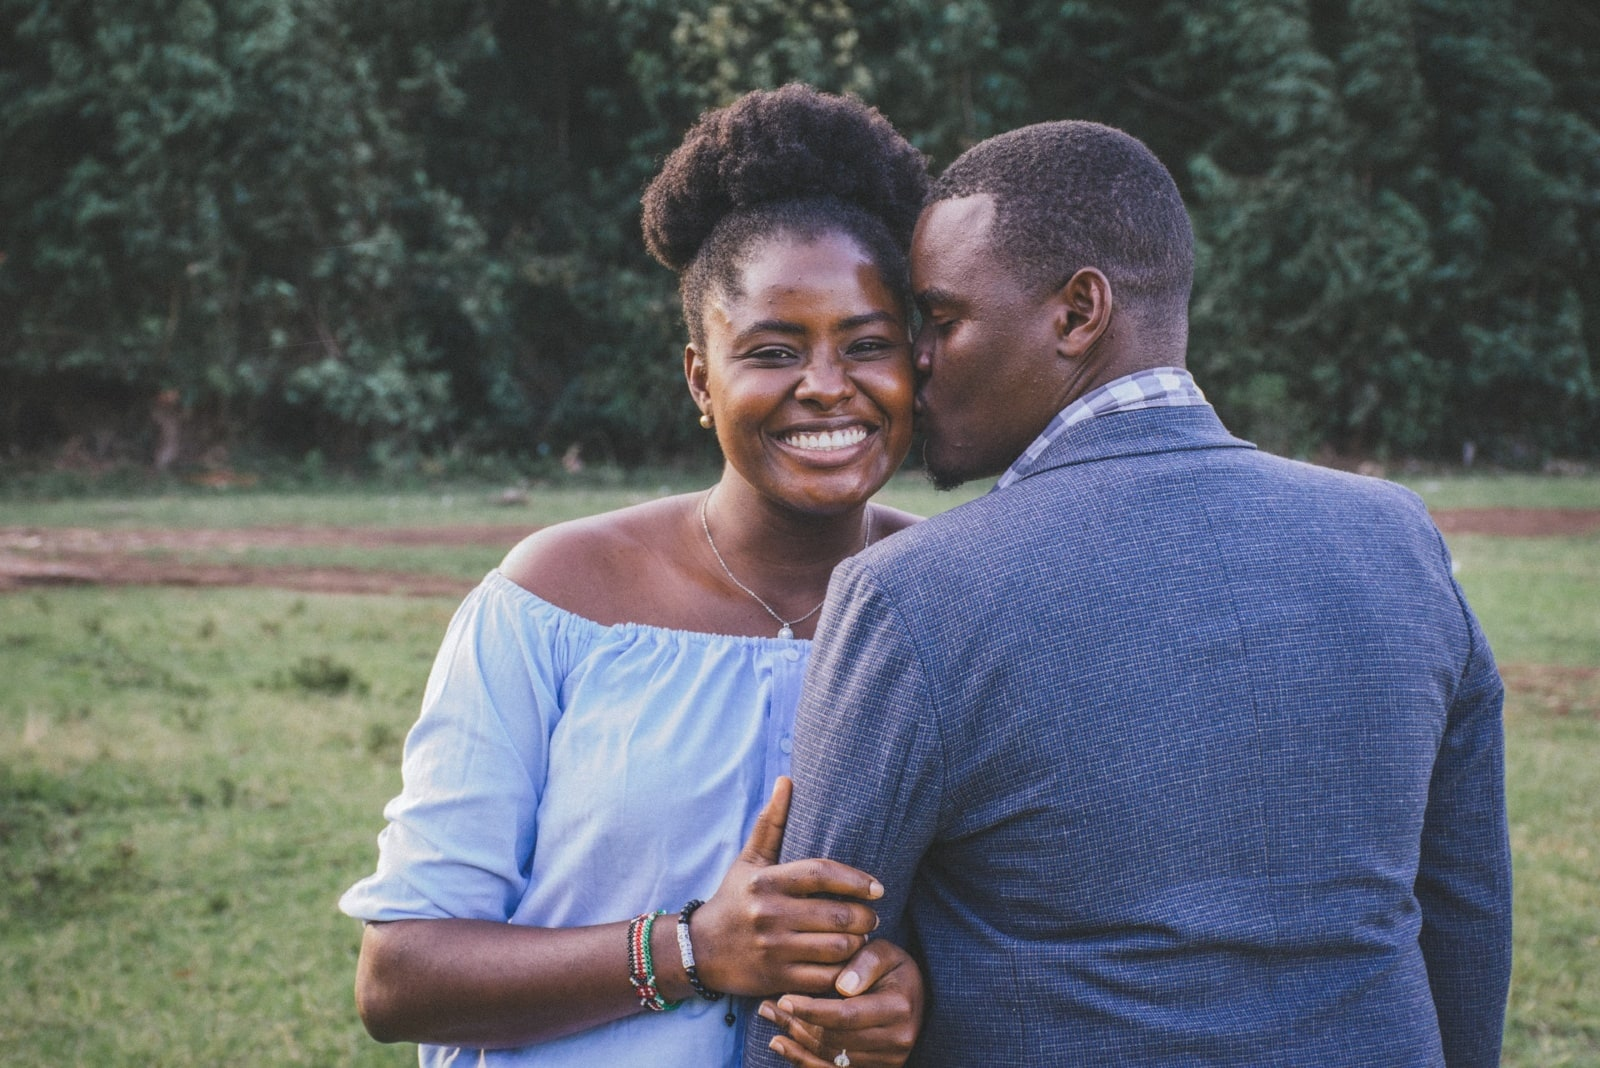 man kissing woman's cheek while standing outdoor